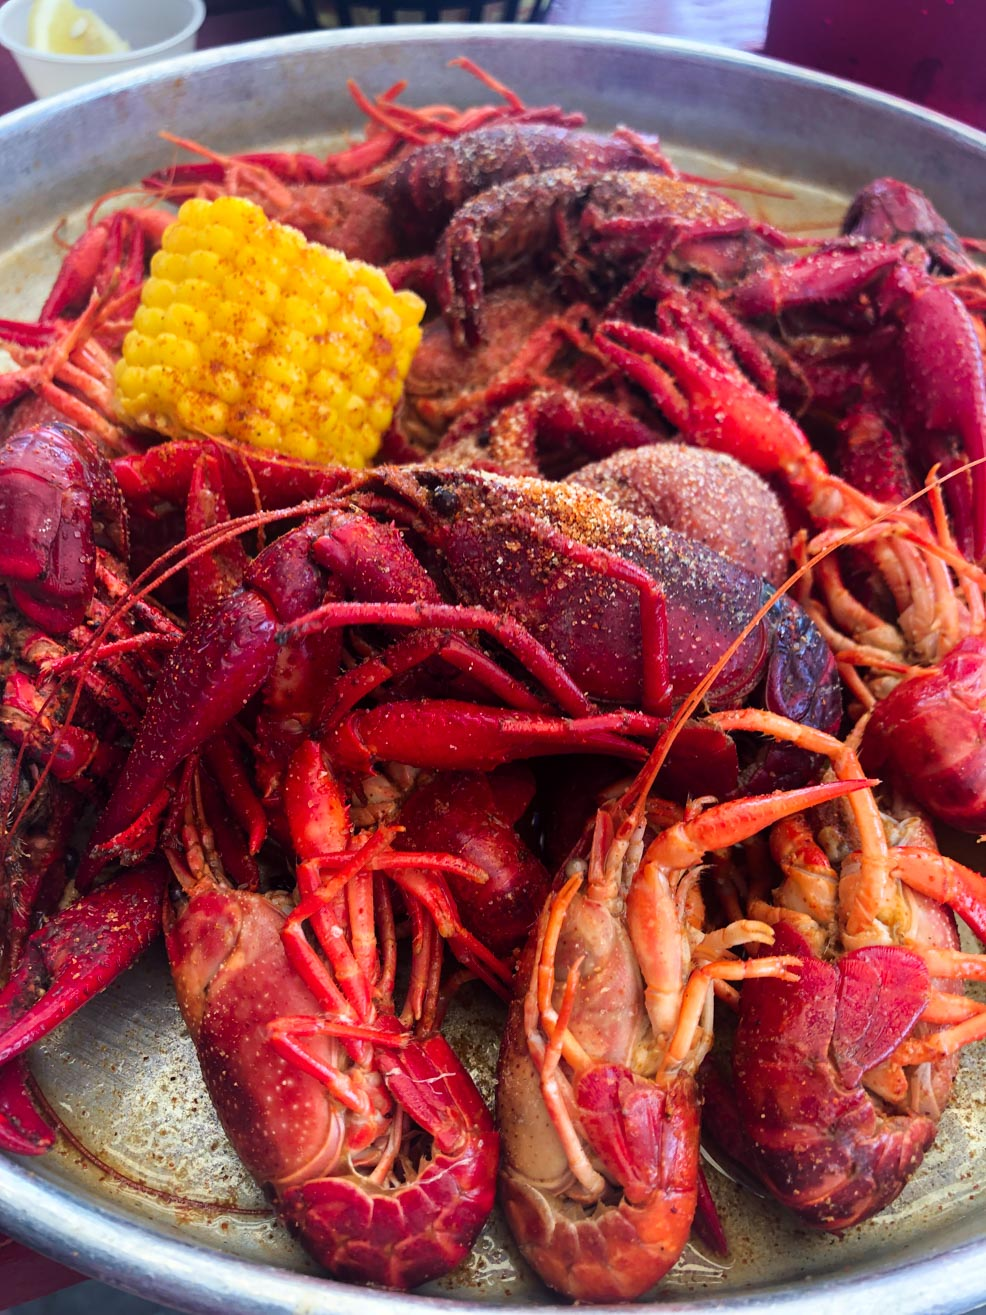 Crawfish Boiled On a Tray